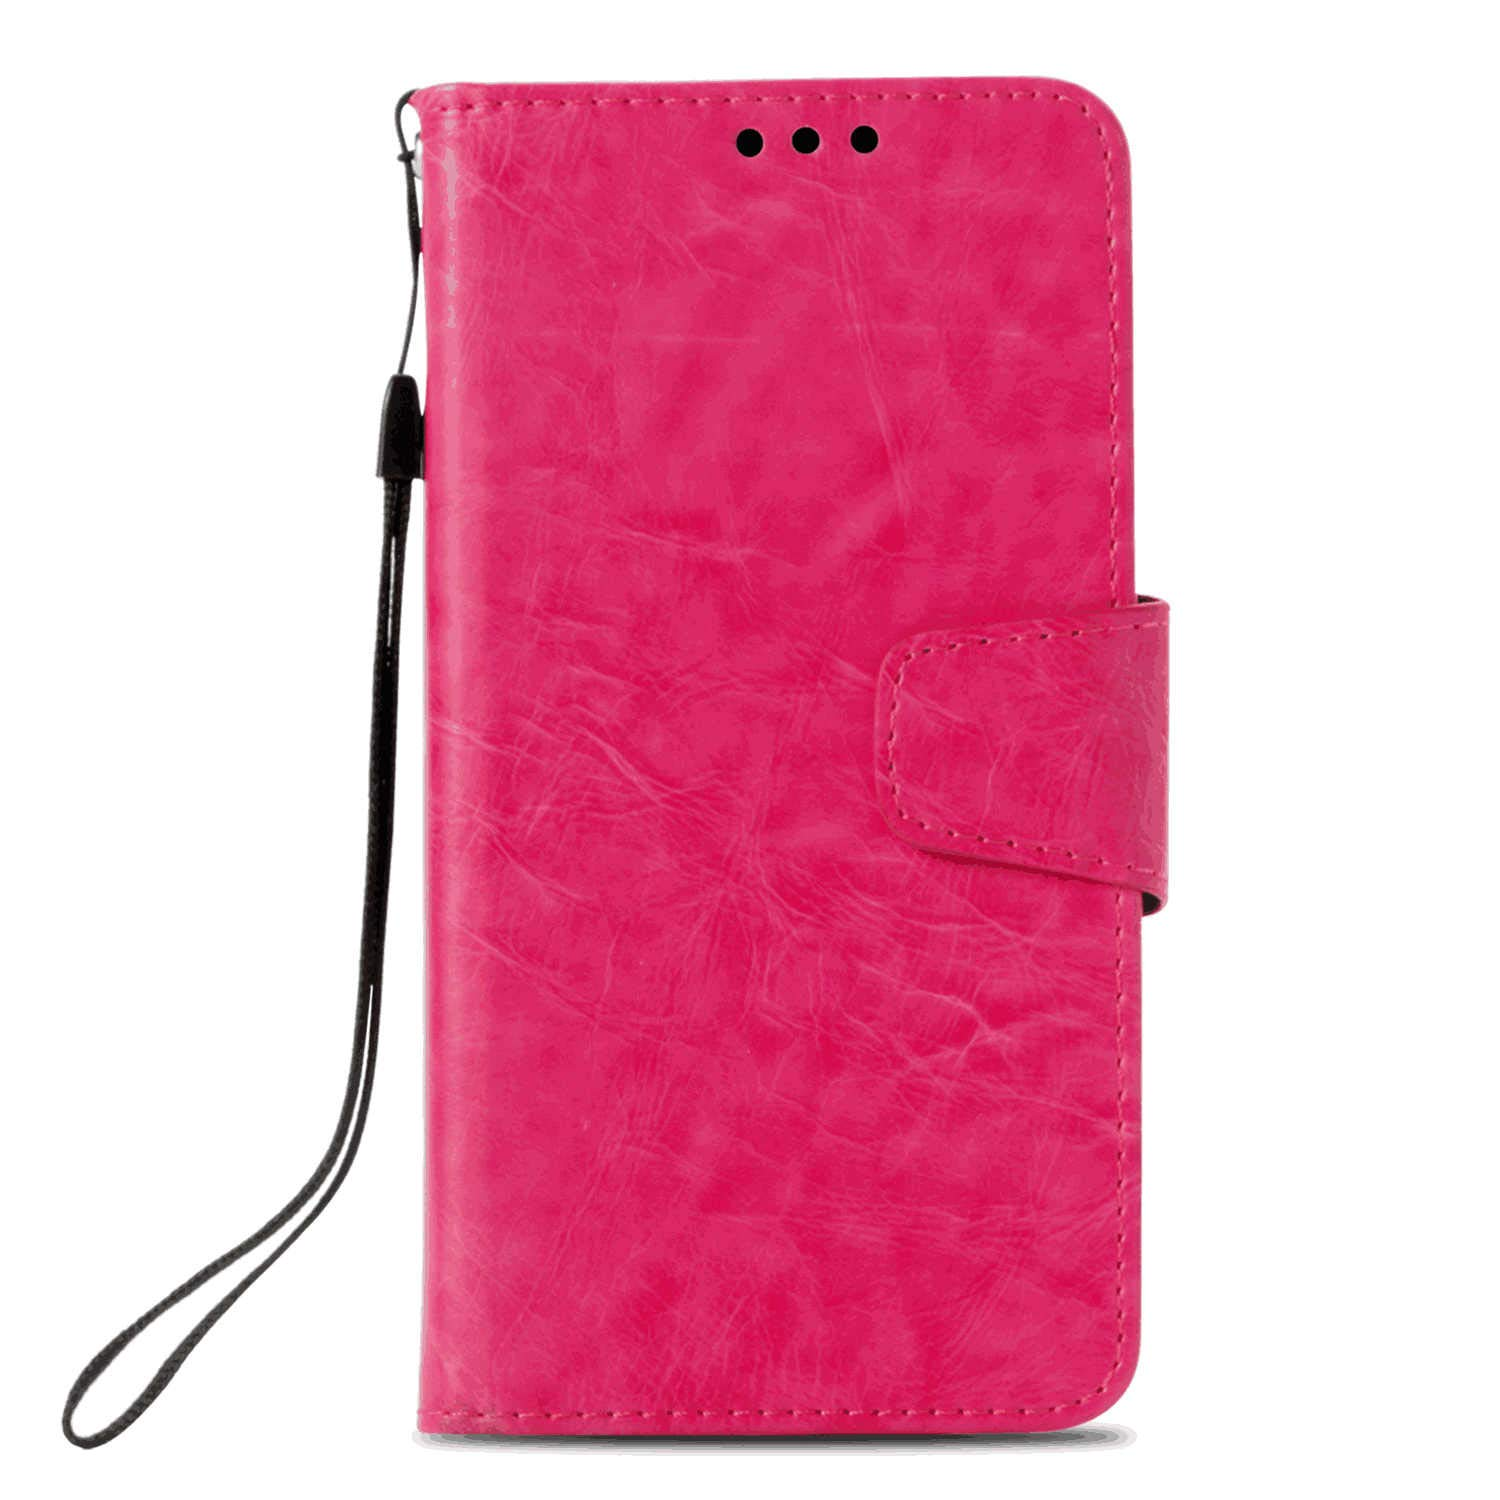 Huawei P20 Lite Flip Case Cover for Huawei P20 Lite Leather Mobile Phone Cover Kickstand Extra-Shockproof Business Card Holders with Free Waterproof-Bag Grey8